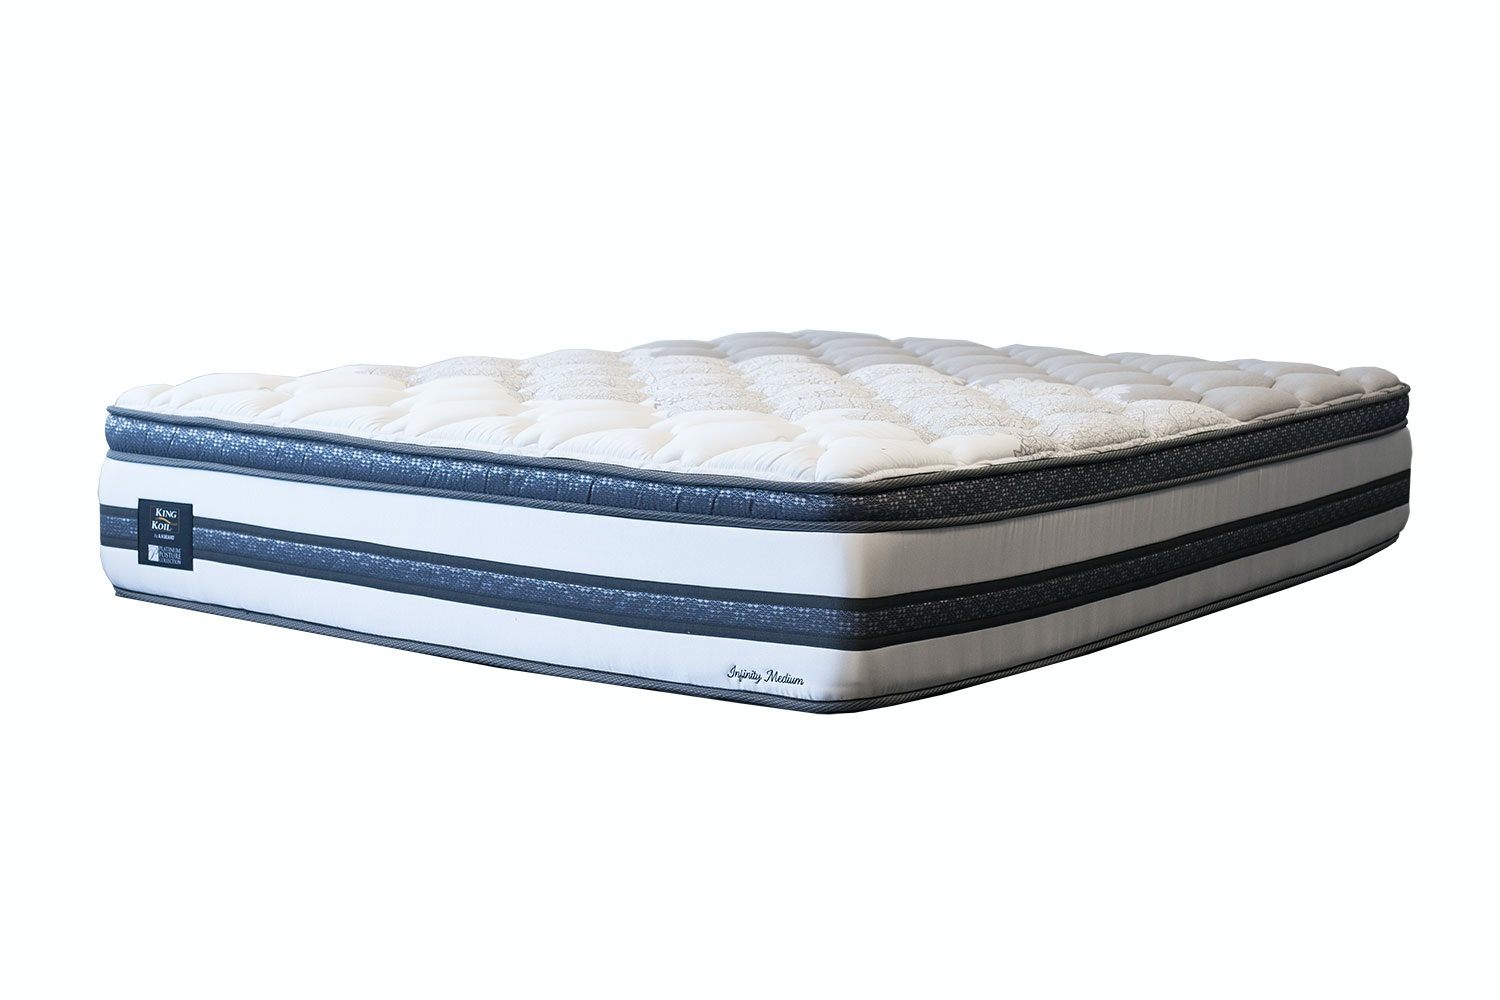 Infinity Medium Super King Mattress by King Koil